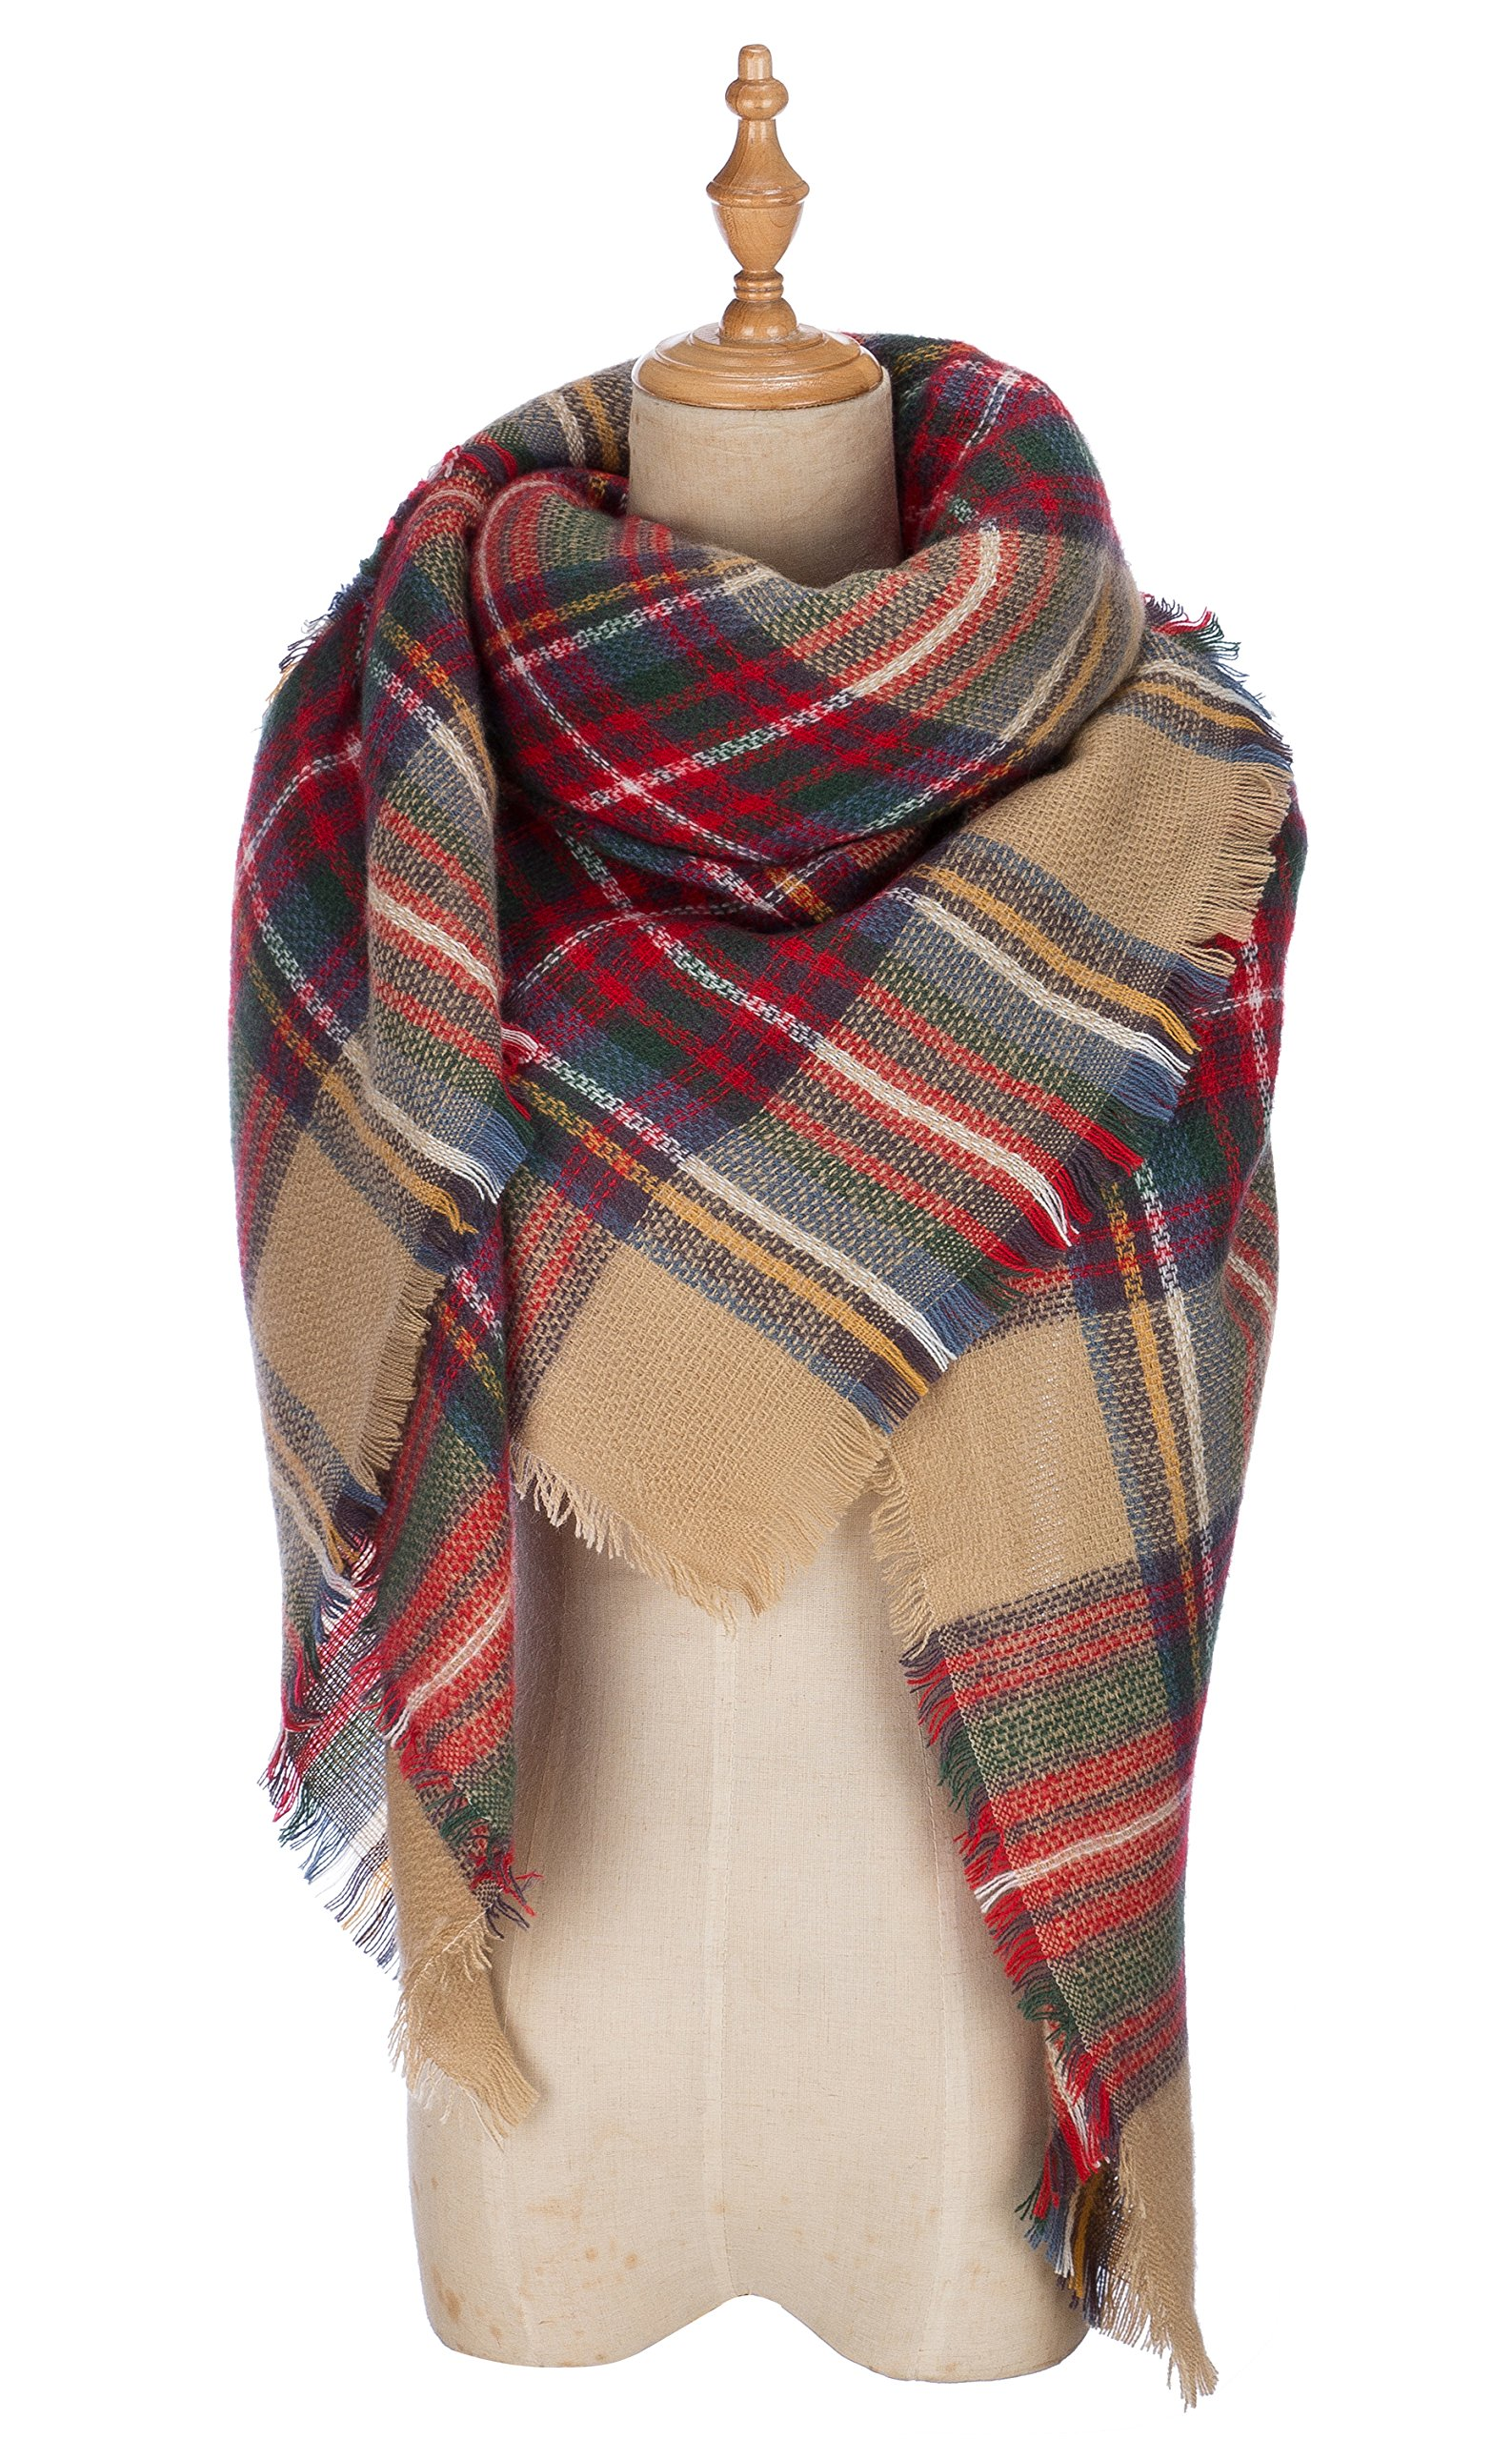 Blanket Scarf Stylish Shawl Wrap